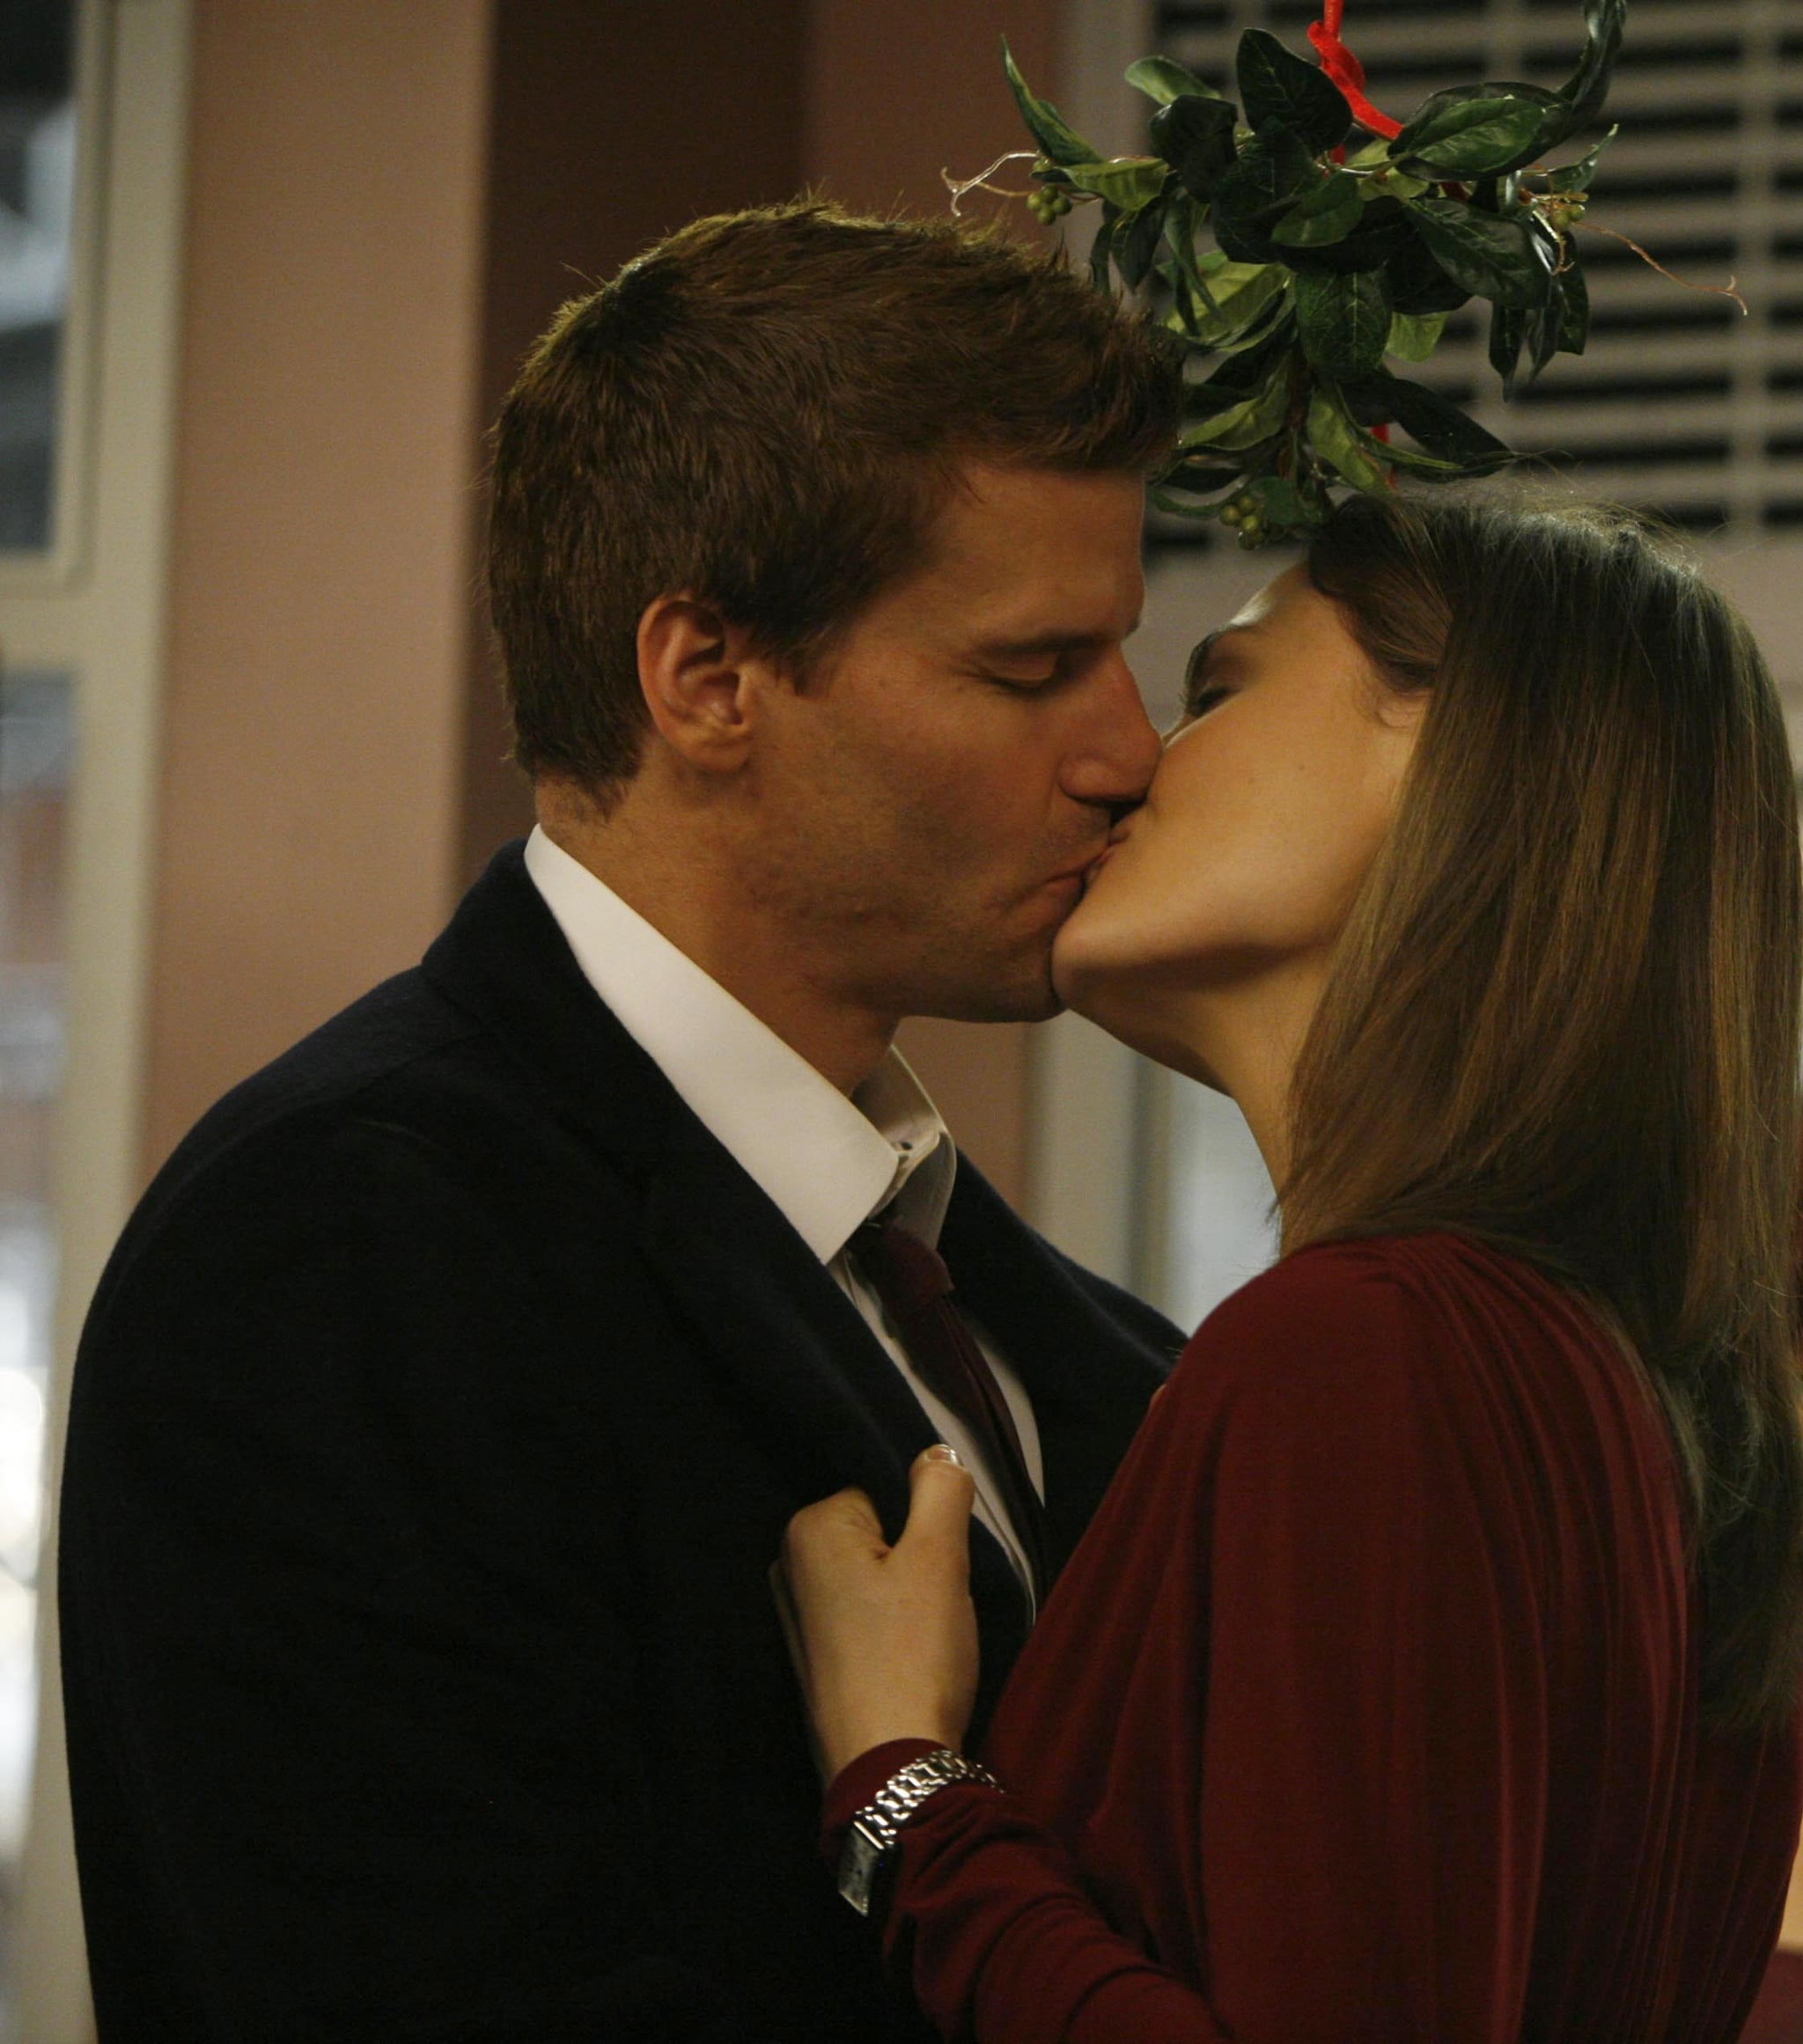 Do first sleep together episode for the booth and time what bones Bones and